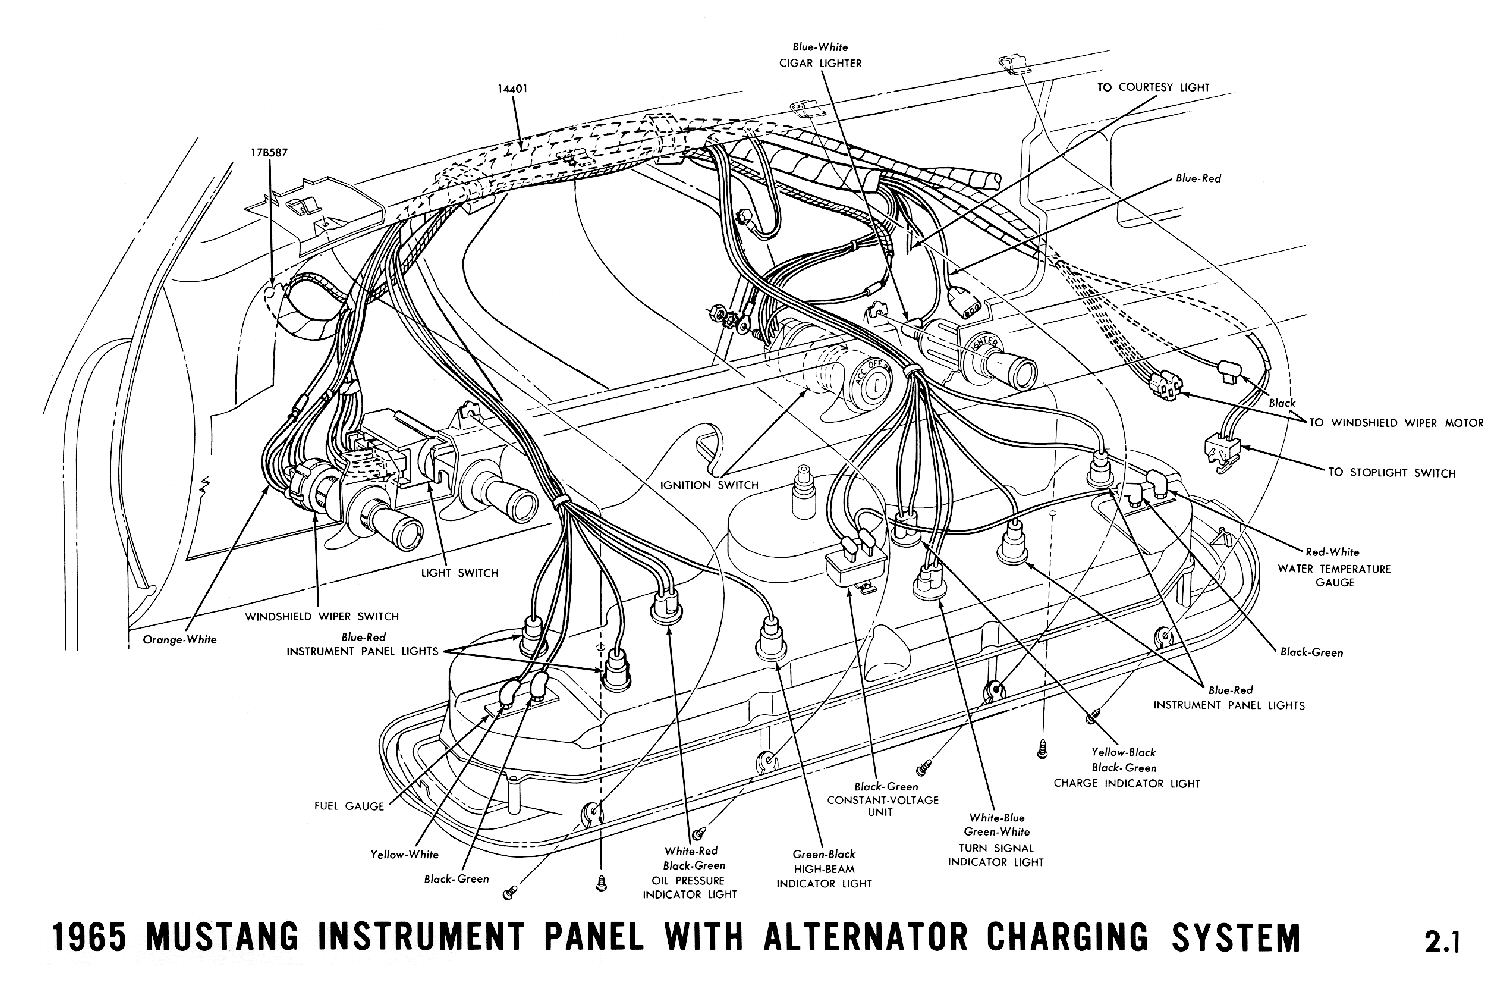 1965a 1965 mustang wiring diagrams average joe restoration 1967 mustang ignition wiring diagram at gsmx.co